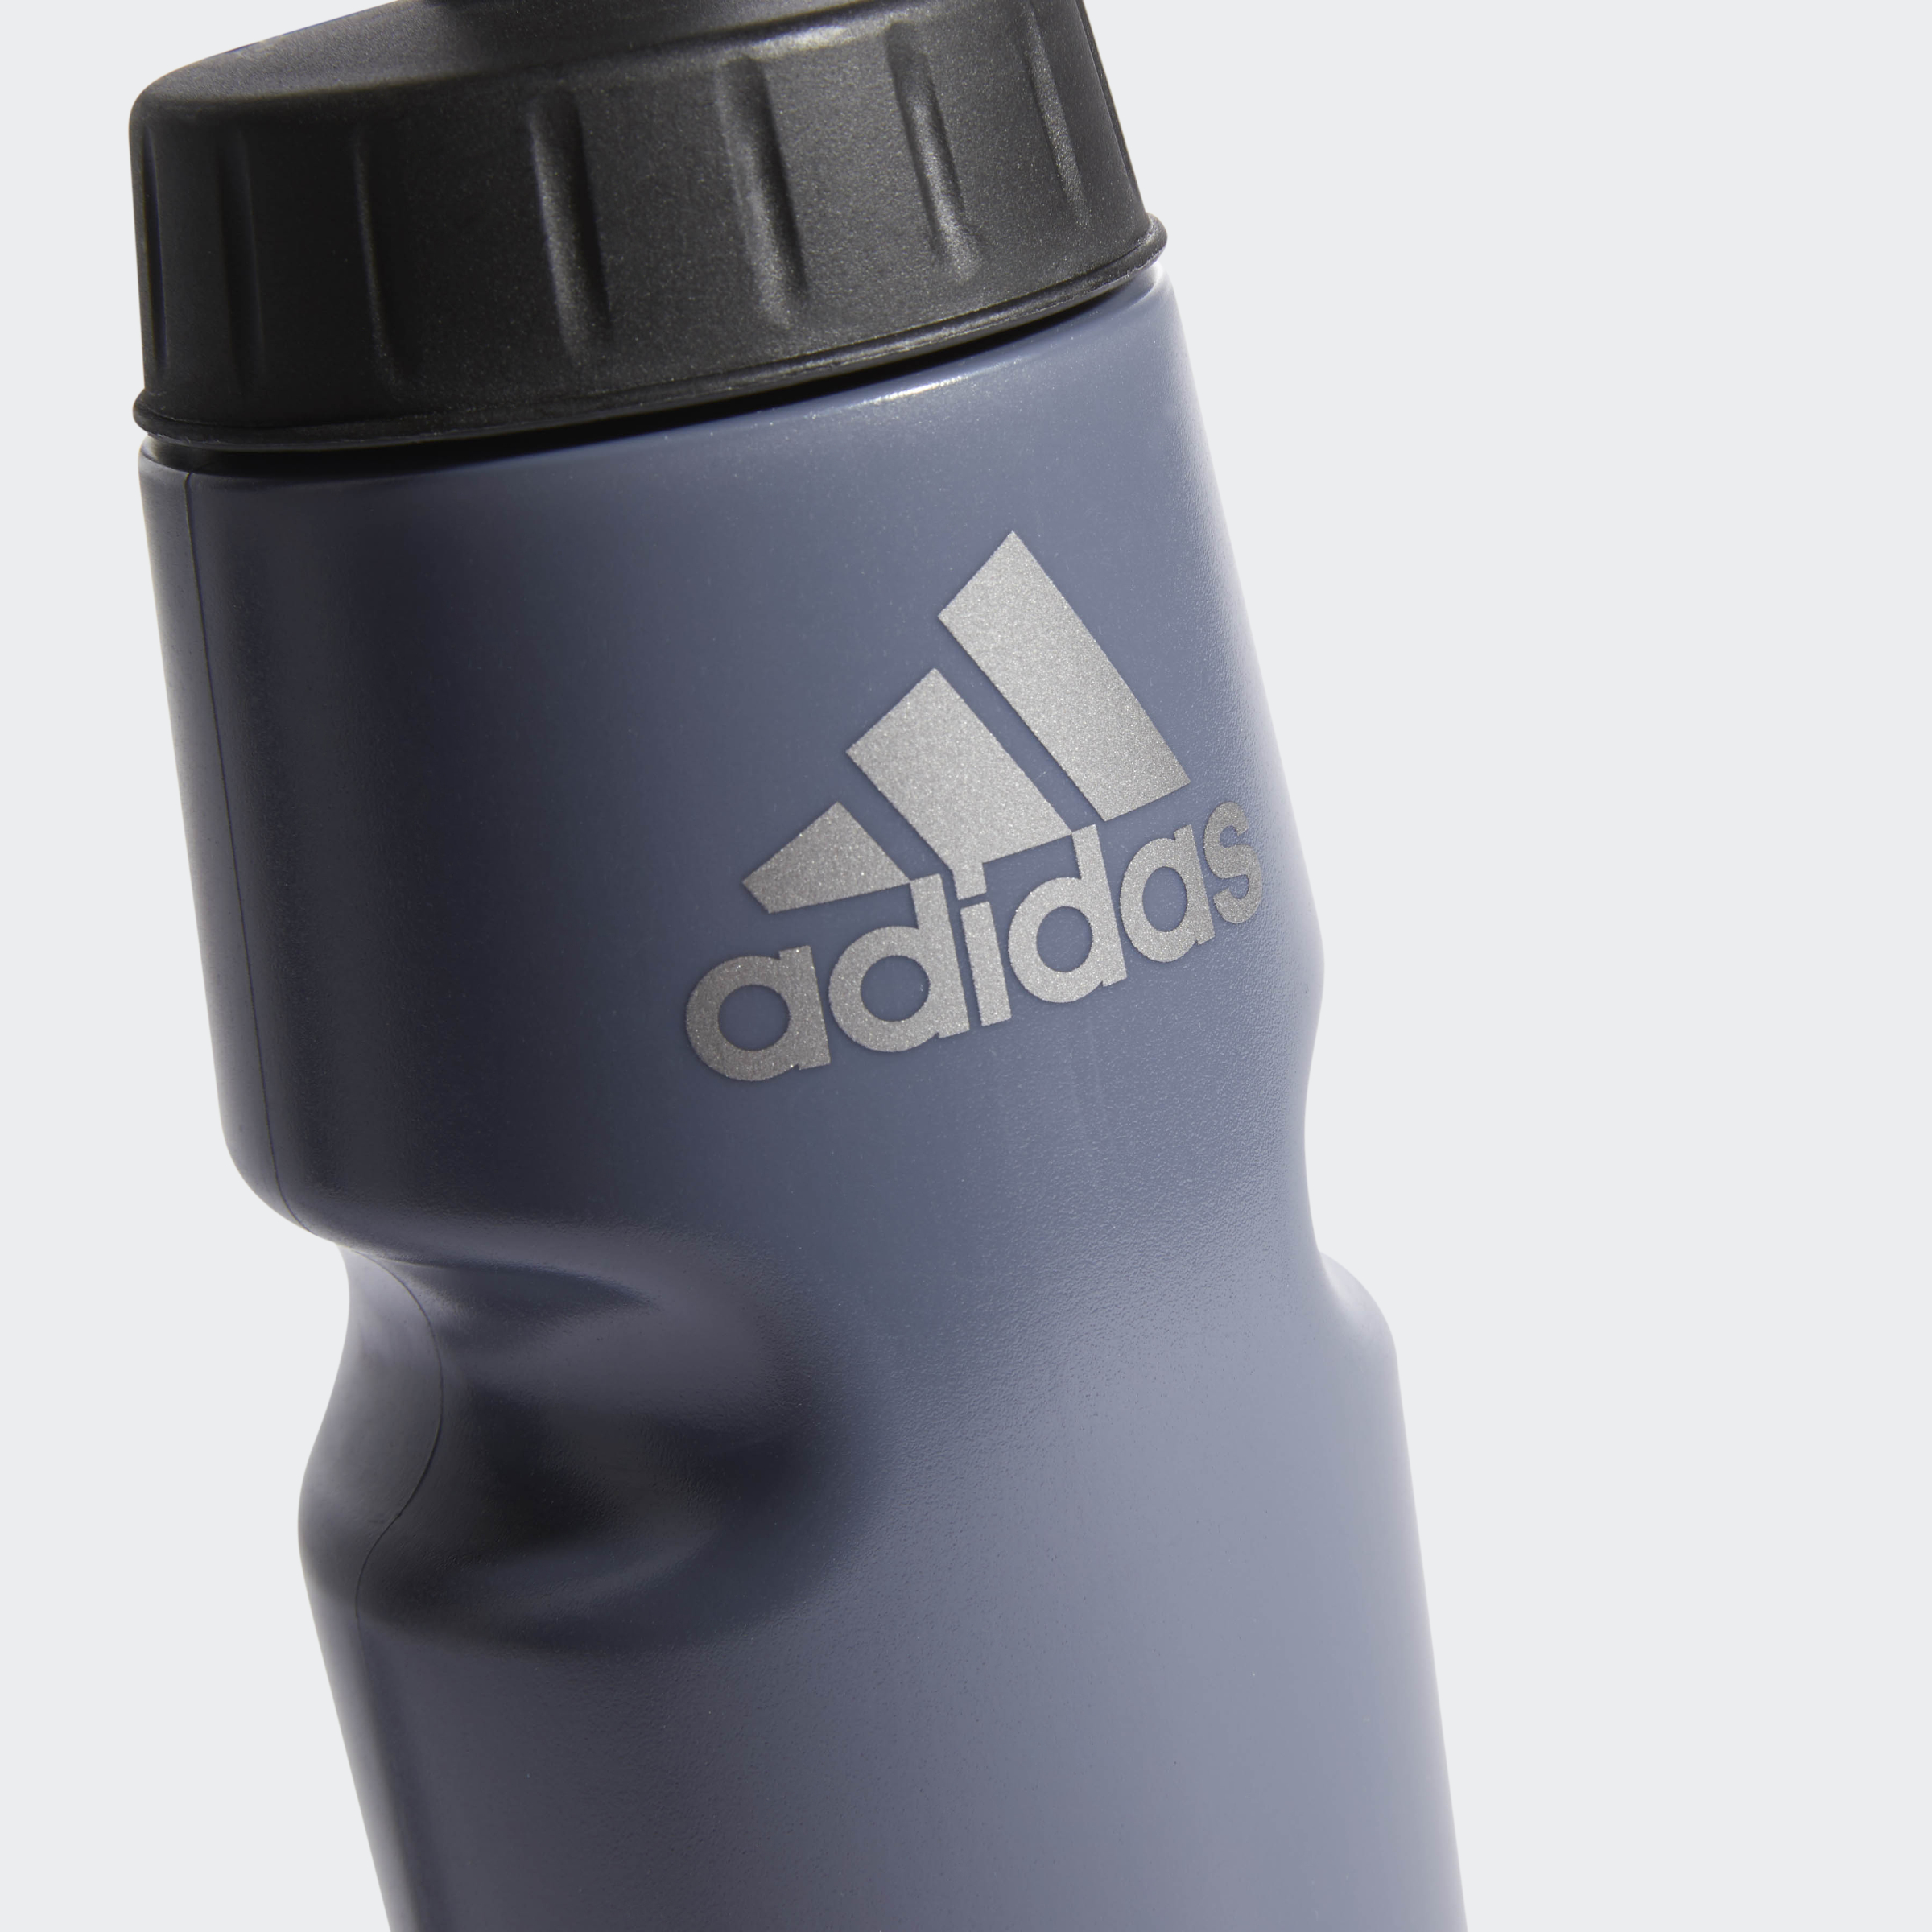 adidas-Squeeze-Plastic-Bottle-750-ML-Other-Accessories miniature 15